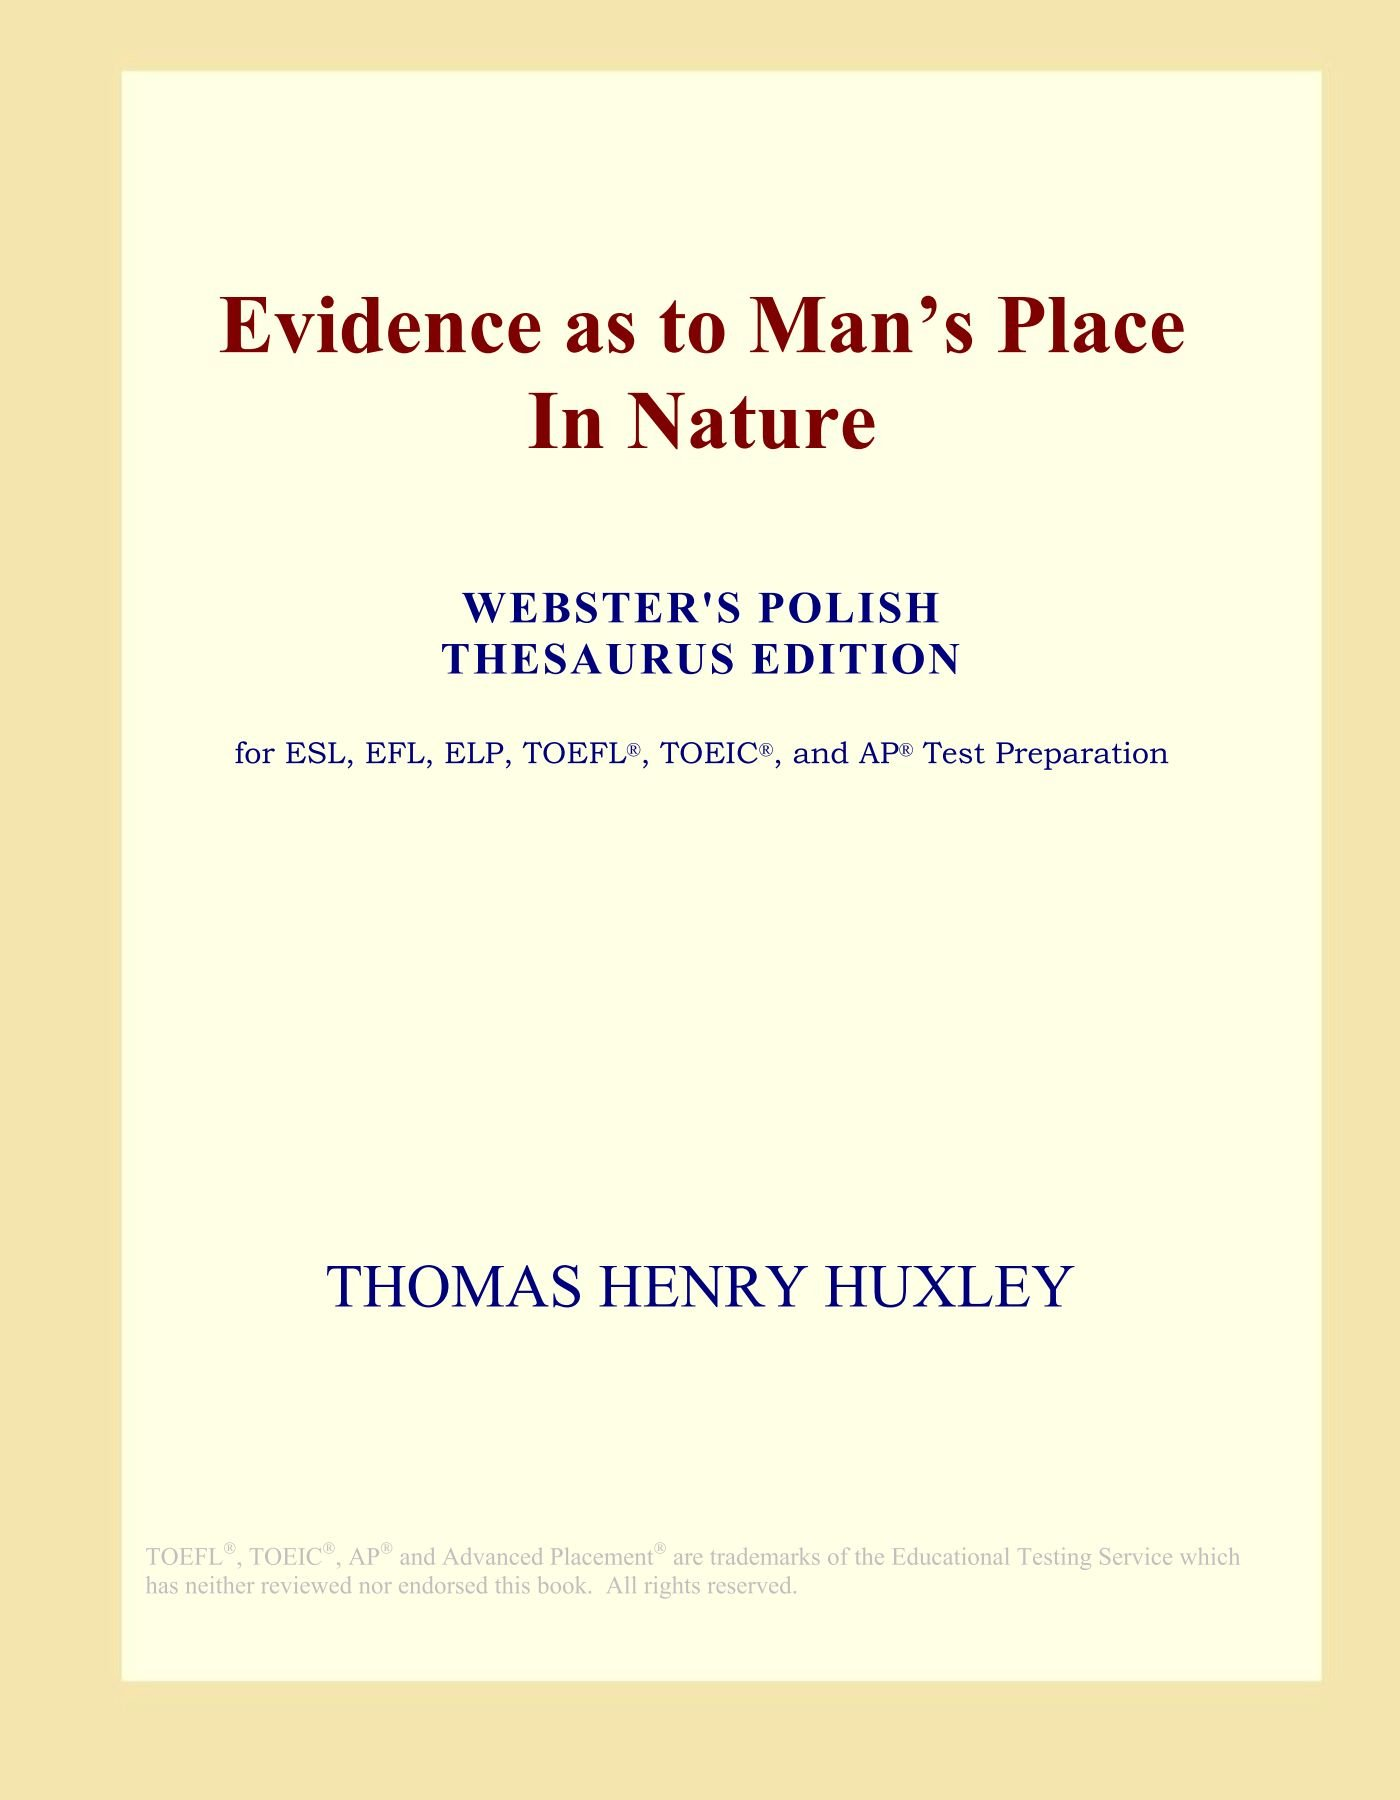 Download Evidence as to Man's Place In Nature (Webster's Polish Thesaurus Edition) PDF